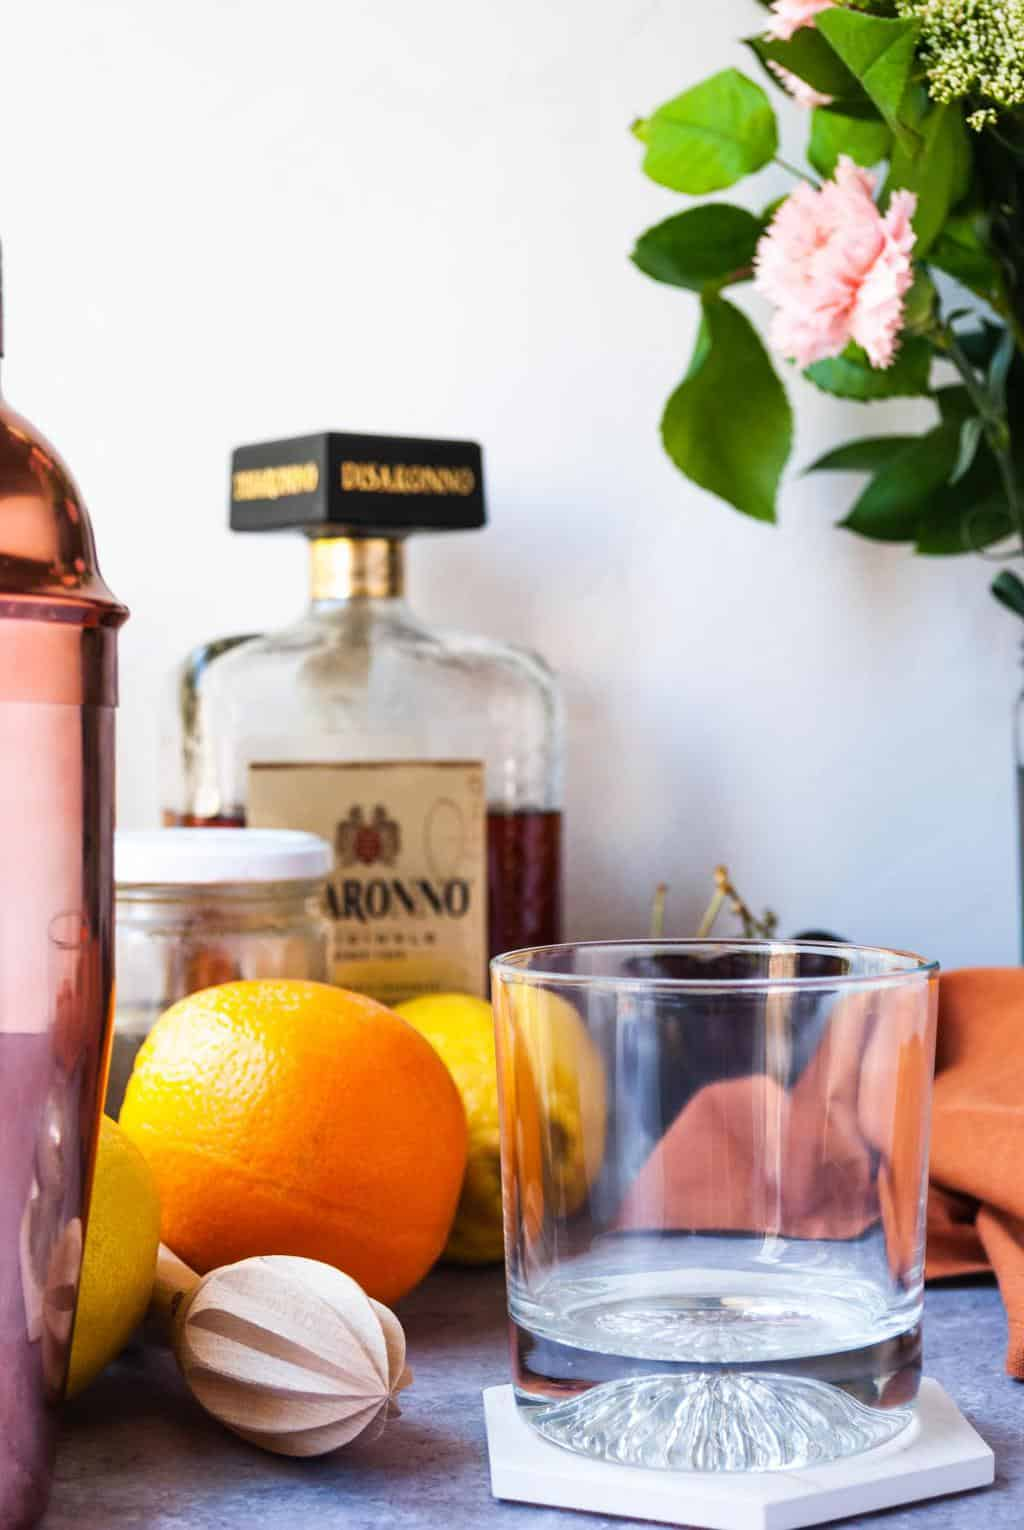 Easy to make Amaretto Sour - a shot of the ingredients to make amaretto sour cocktail